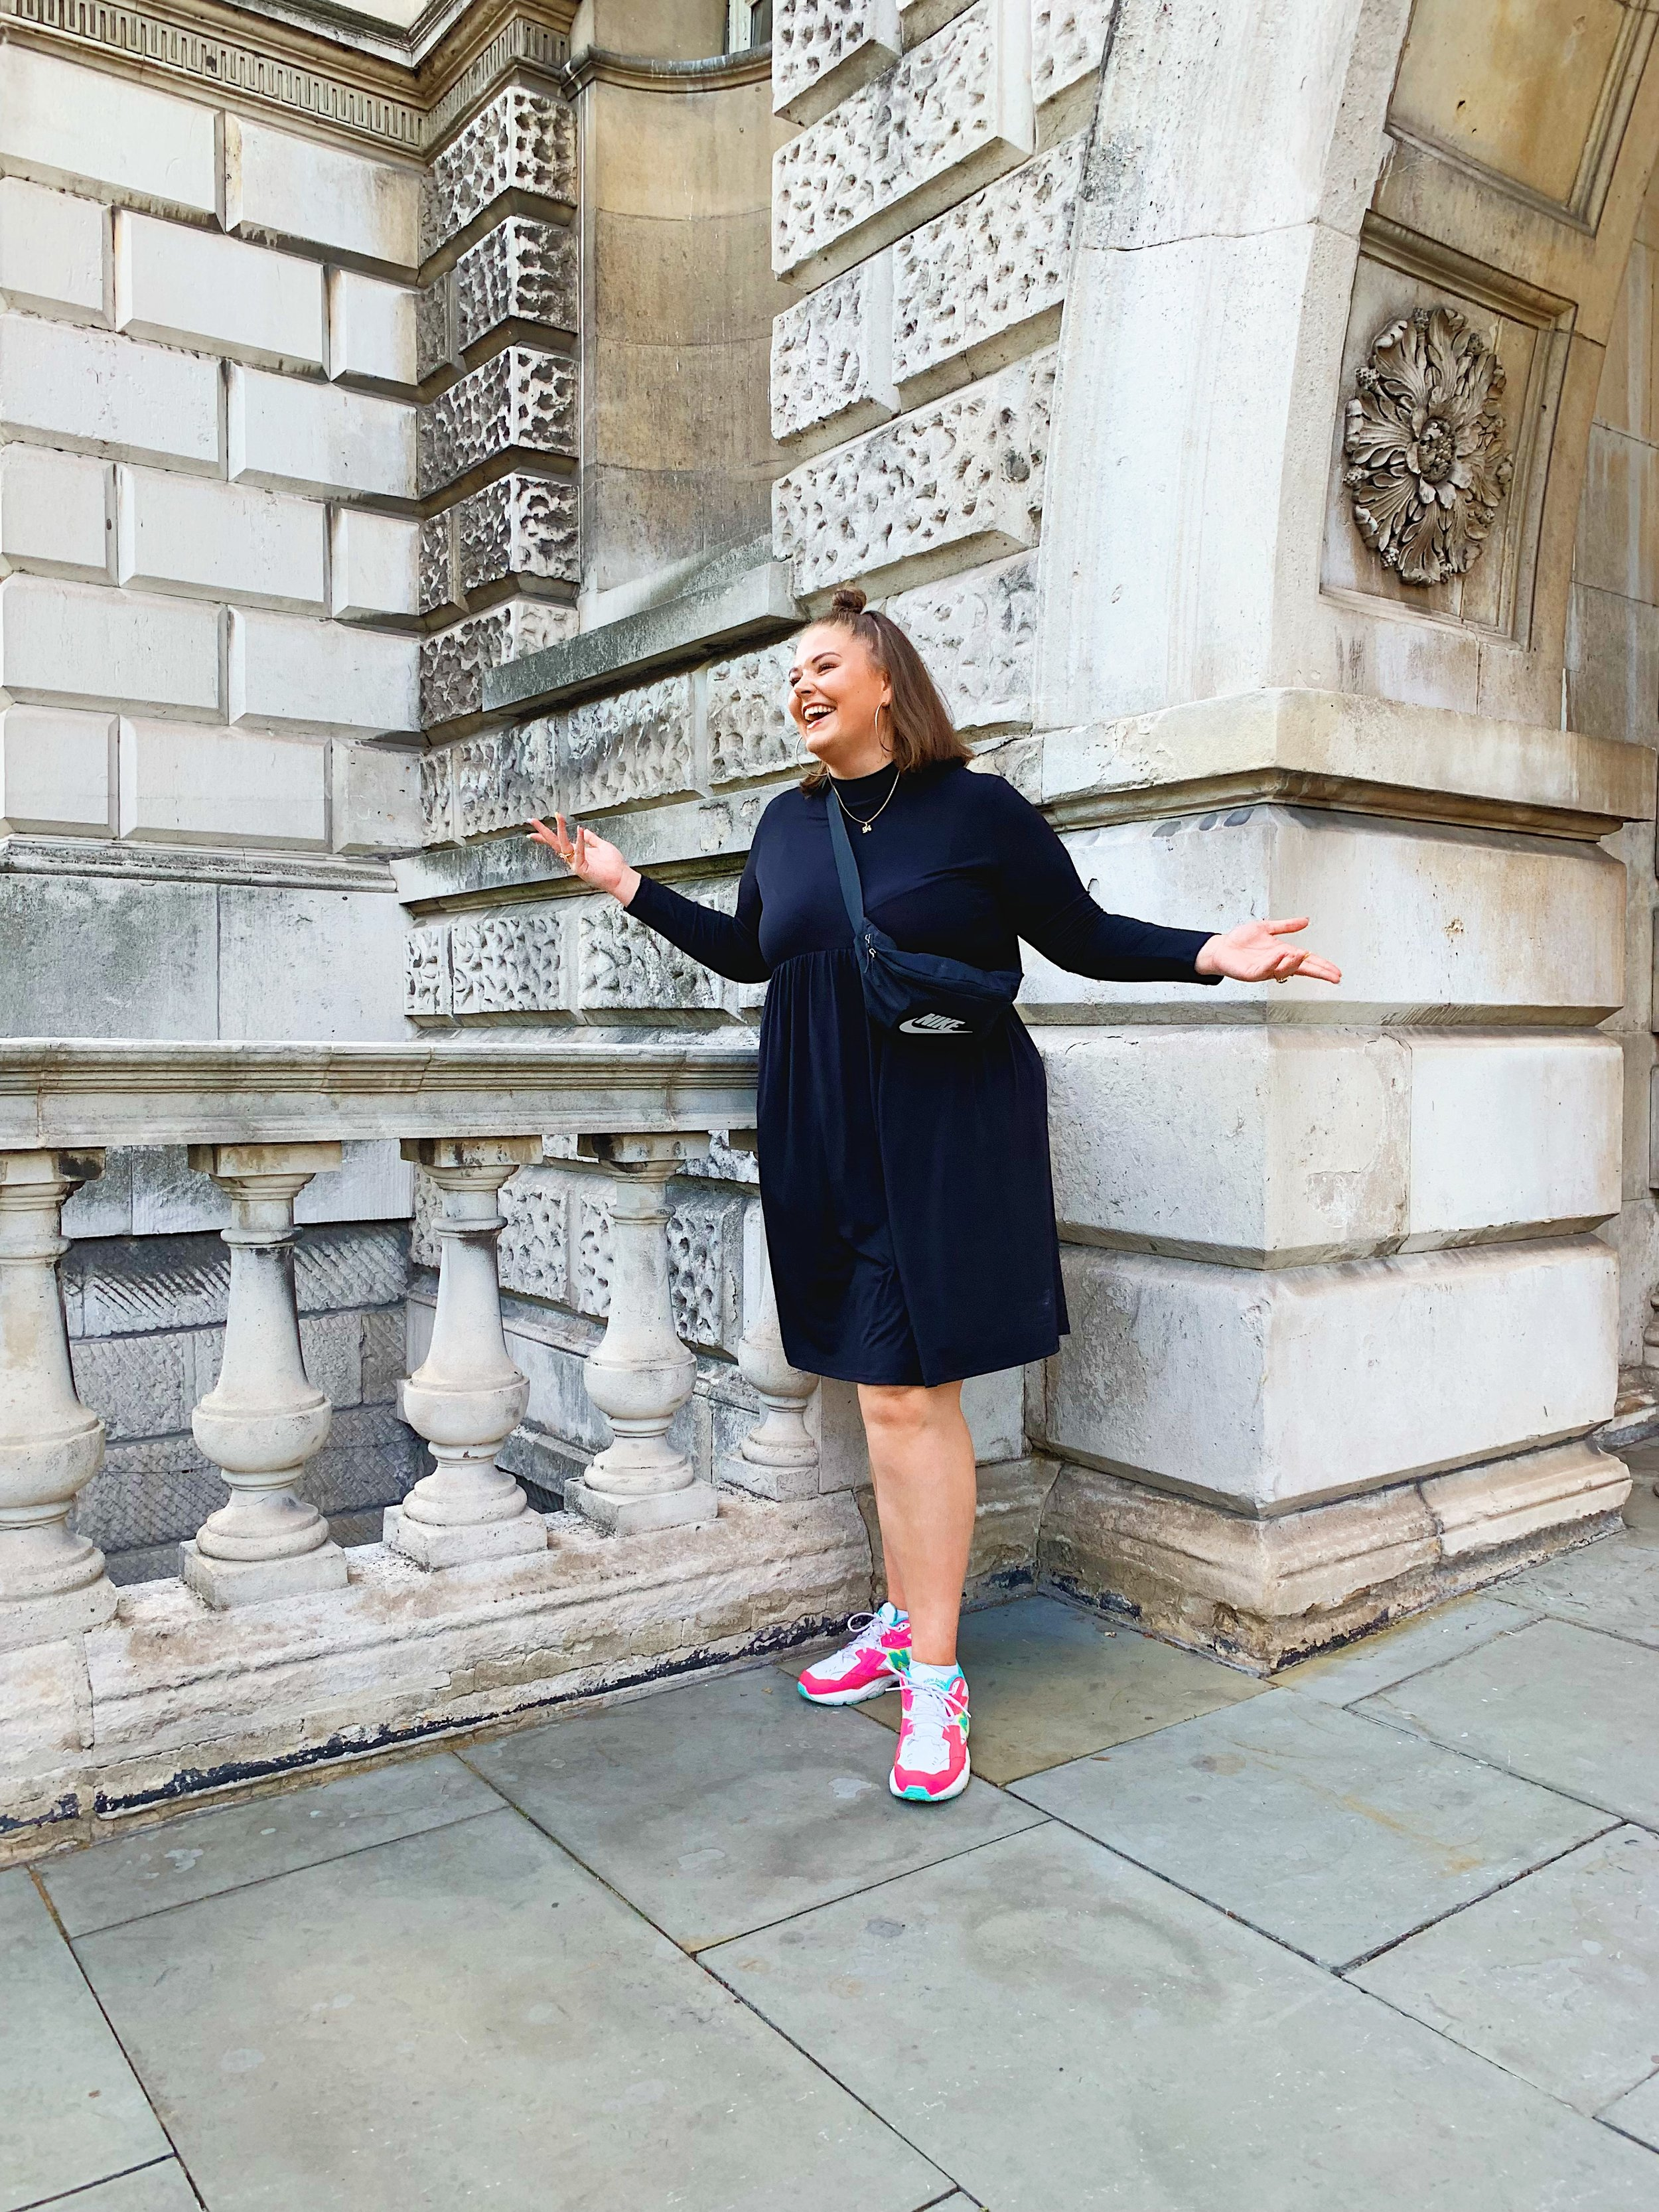 Radio Presenter Rebecca Judd, at Somerset House: Summer Series with Soulection | Shot on iPhone by Almass Badat